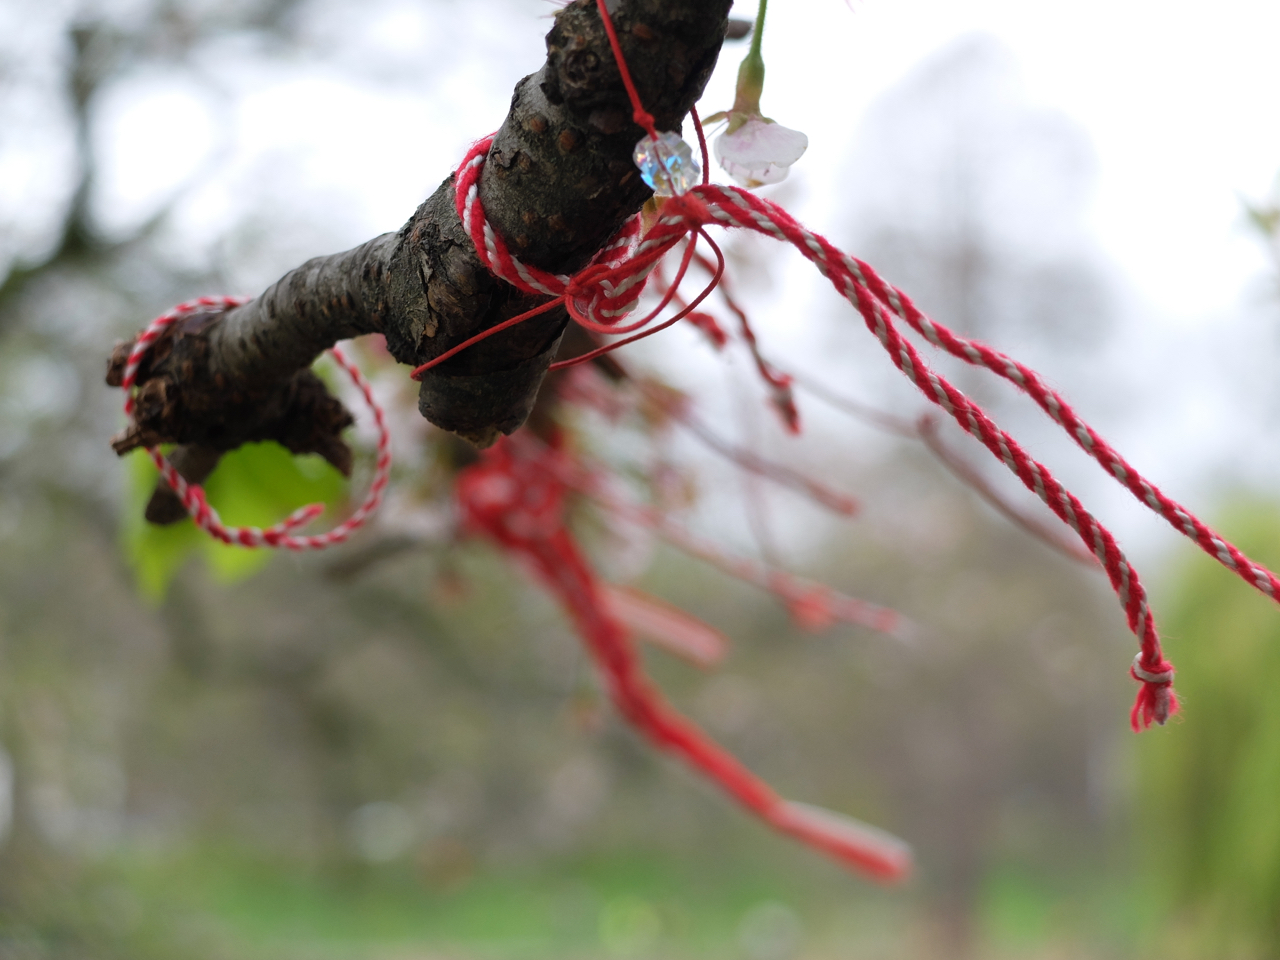 Red thread on a branch in St James Park